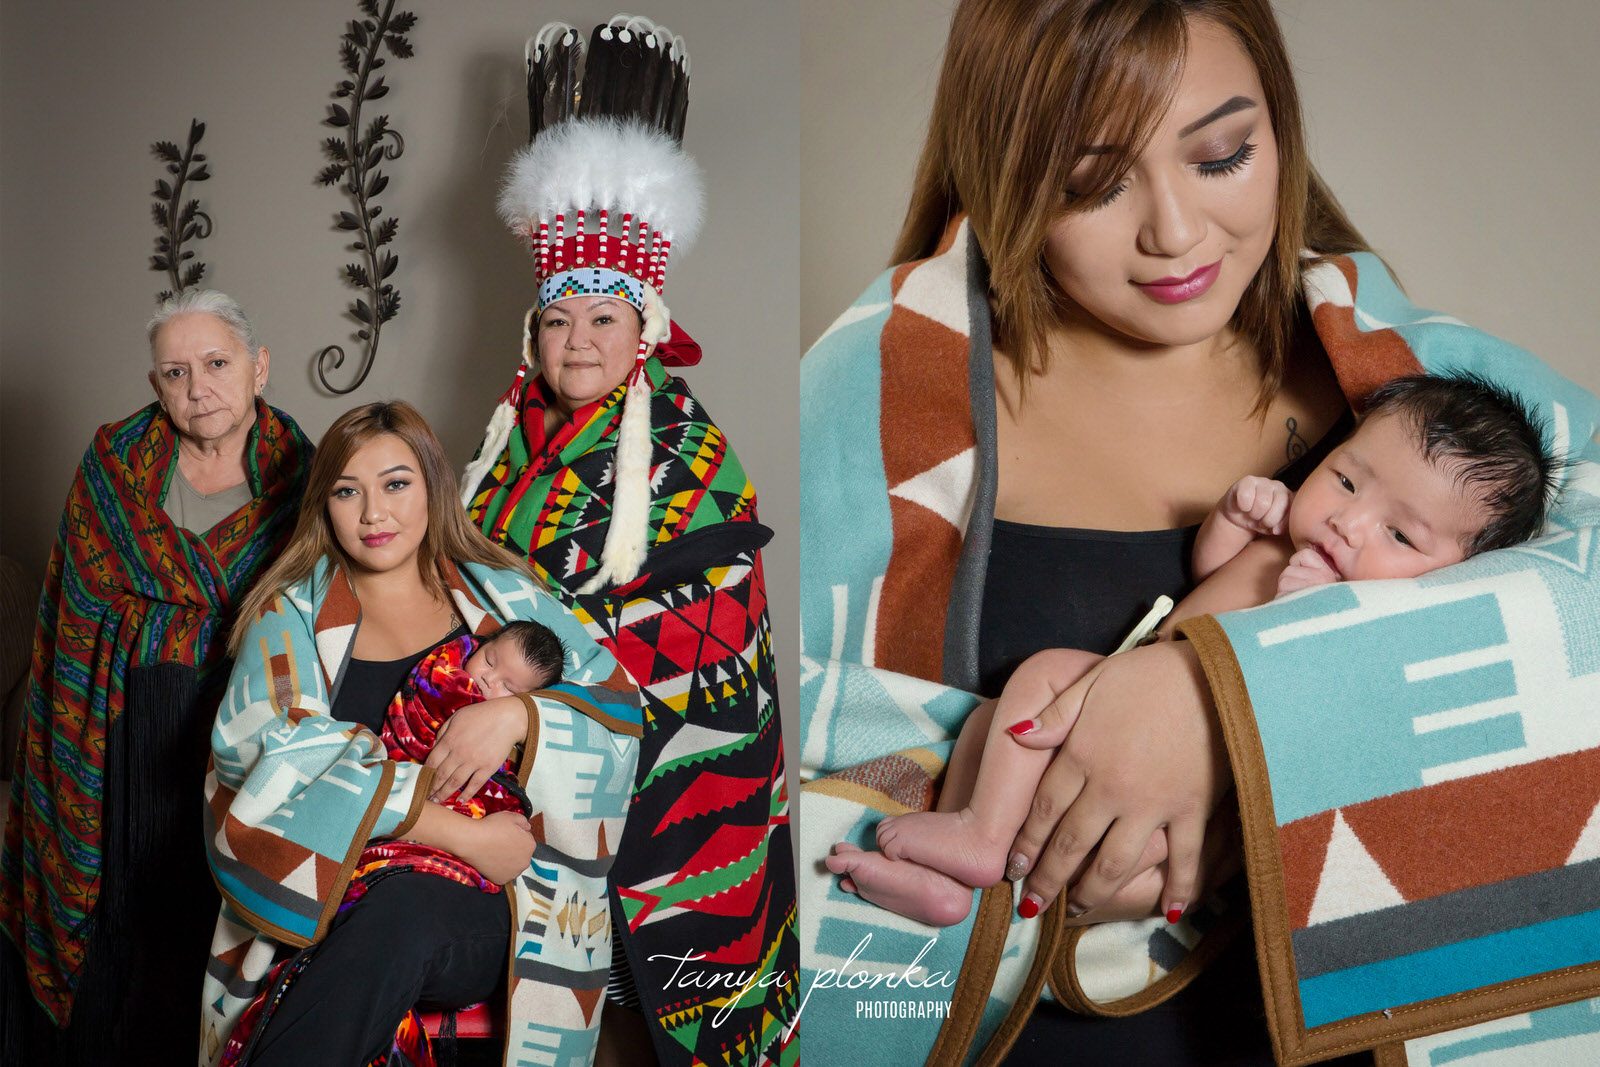 newborn baby poses with mother, grandmother, and great grandmother wearing traditional First Nations clothing